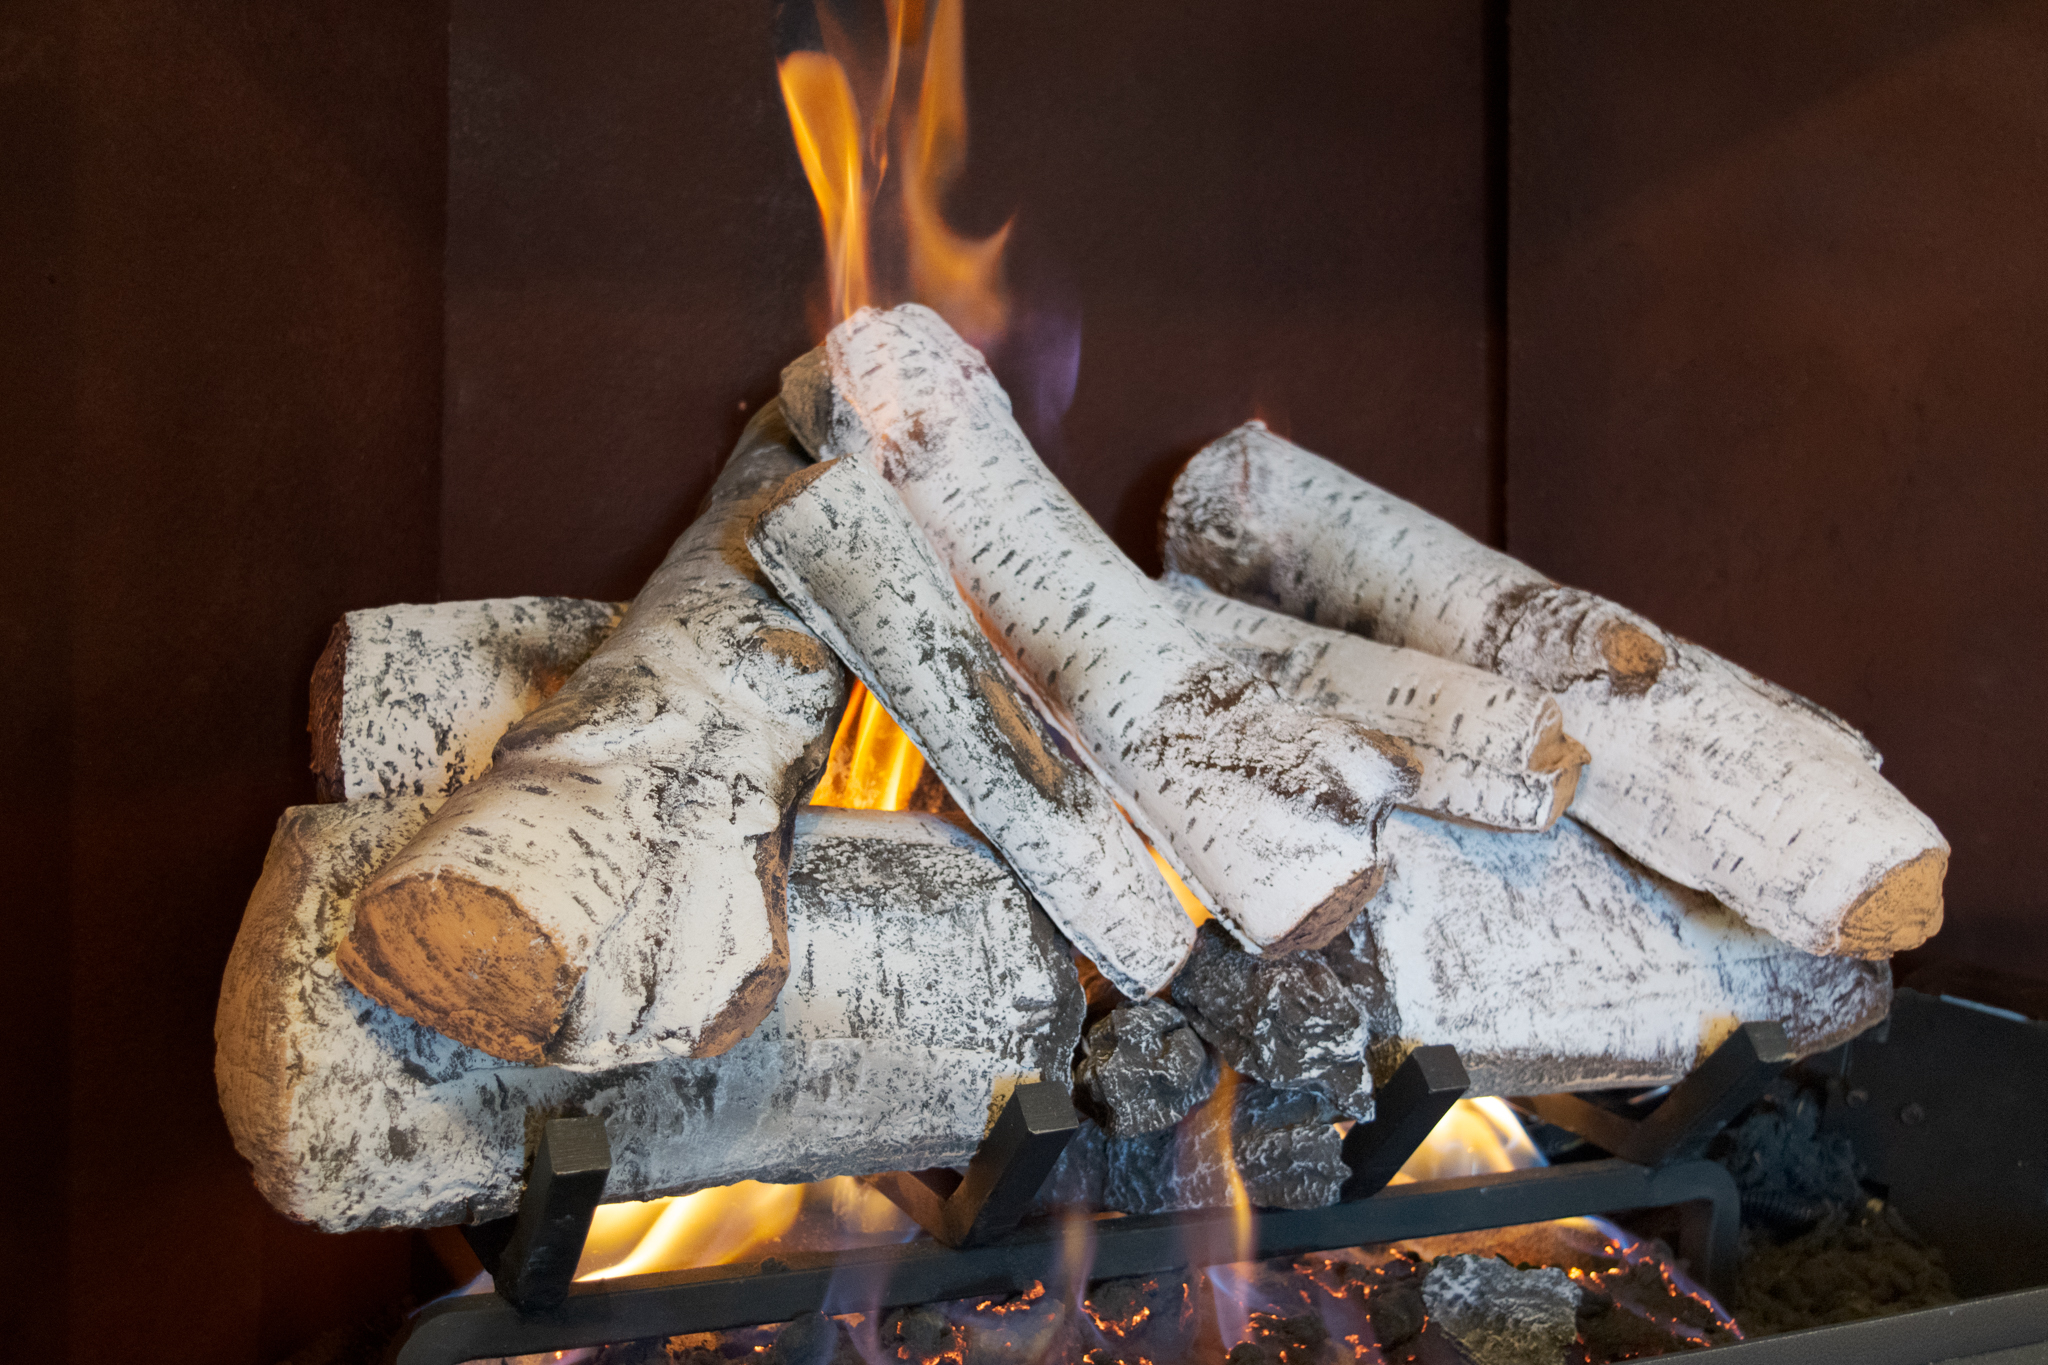 Hargrove Aspen Timbers - ‧ Radiant Heat Vented Gas Log Set‧ 24-inch Ceramic Logs‧ Attractive white bark‧ Approx 30% Efficient‧ Unburned look – no charring‧ Choice of manual knob or hand-held remote control‧ Ember bed Burner ‧ Available in 4 sizes from 21-inch – 36-inch